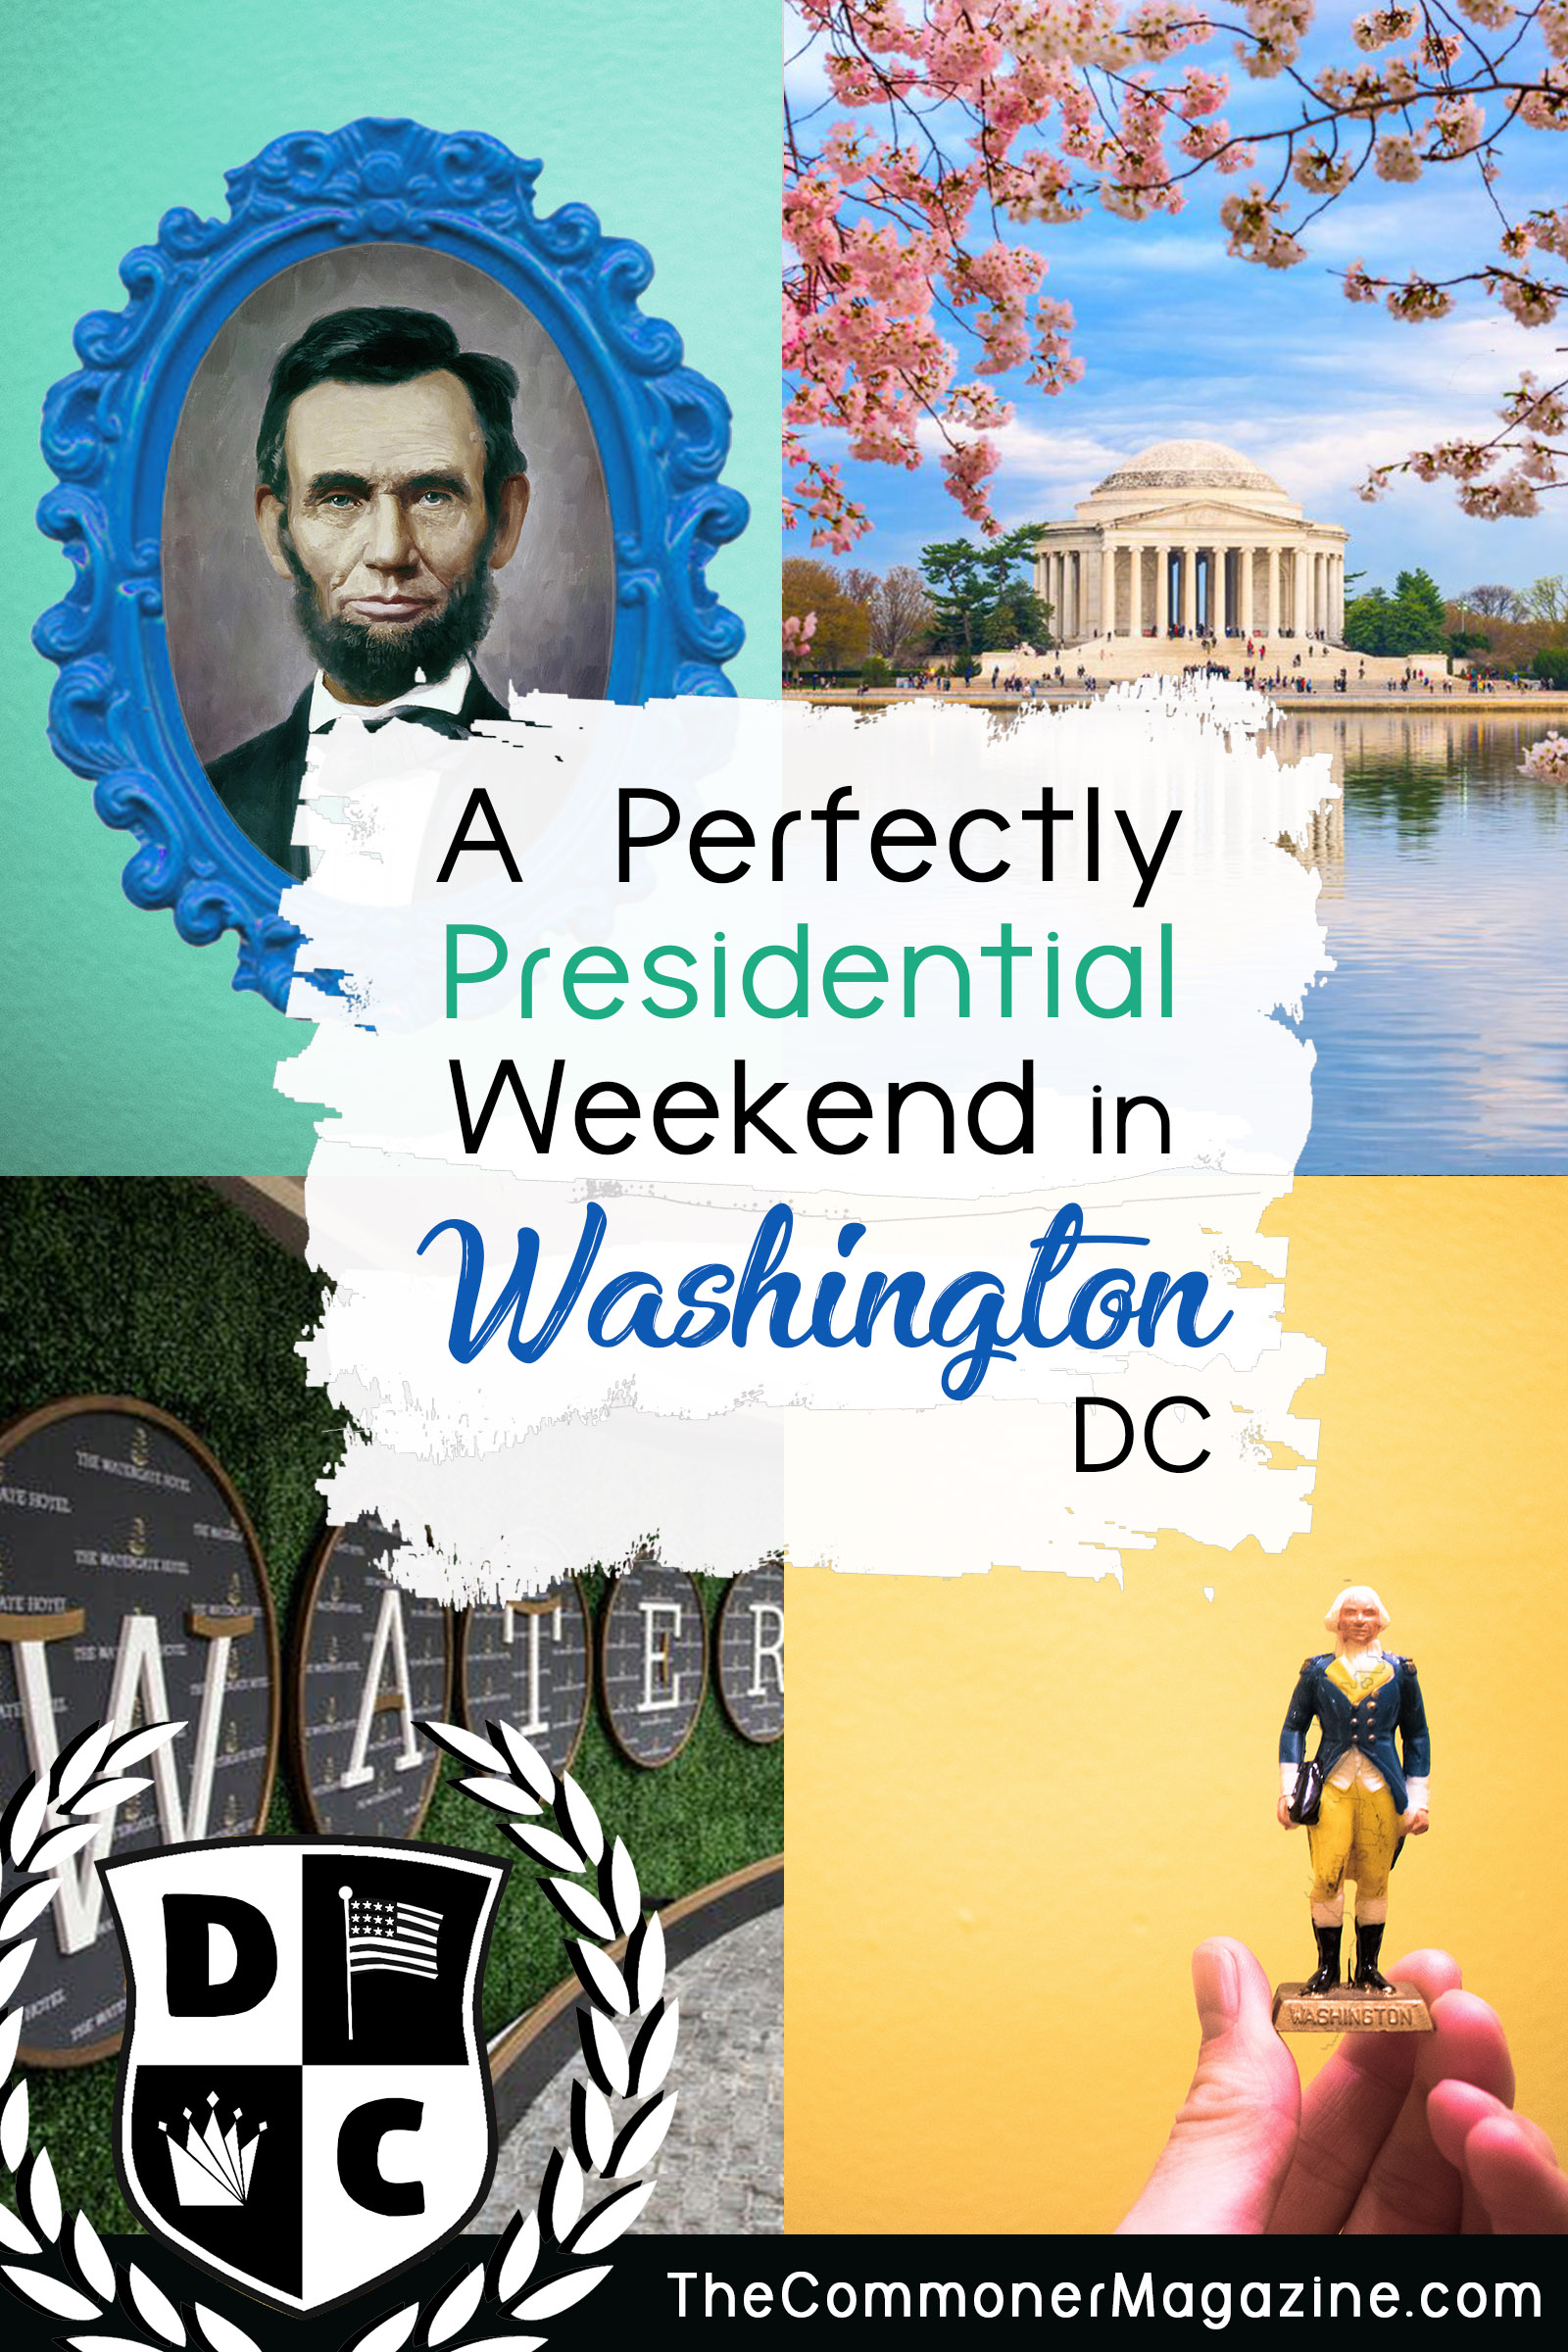 Everyone loves a theme right? If you're looking for fresh things to do in Washington DC? We've got you covered with a perfectly presidential weekend in the Capital. With fun, president themed activities that go way beyond the famous memorials. The Commoner Magazine, full of USA travel tips from local experts. #washingtonDC #thingstodoinwashingtondc #presidentsday #watergate #DC #washingtondctravel #USAtravel